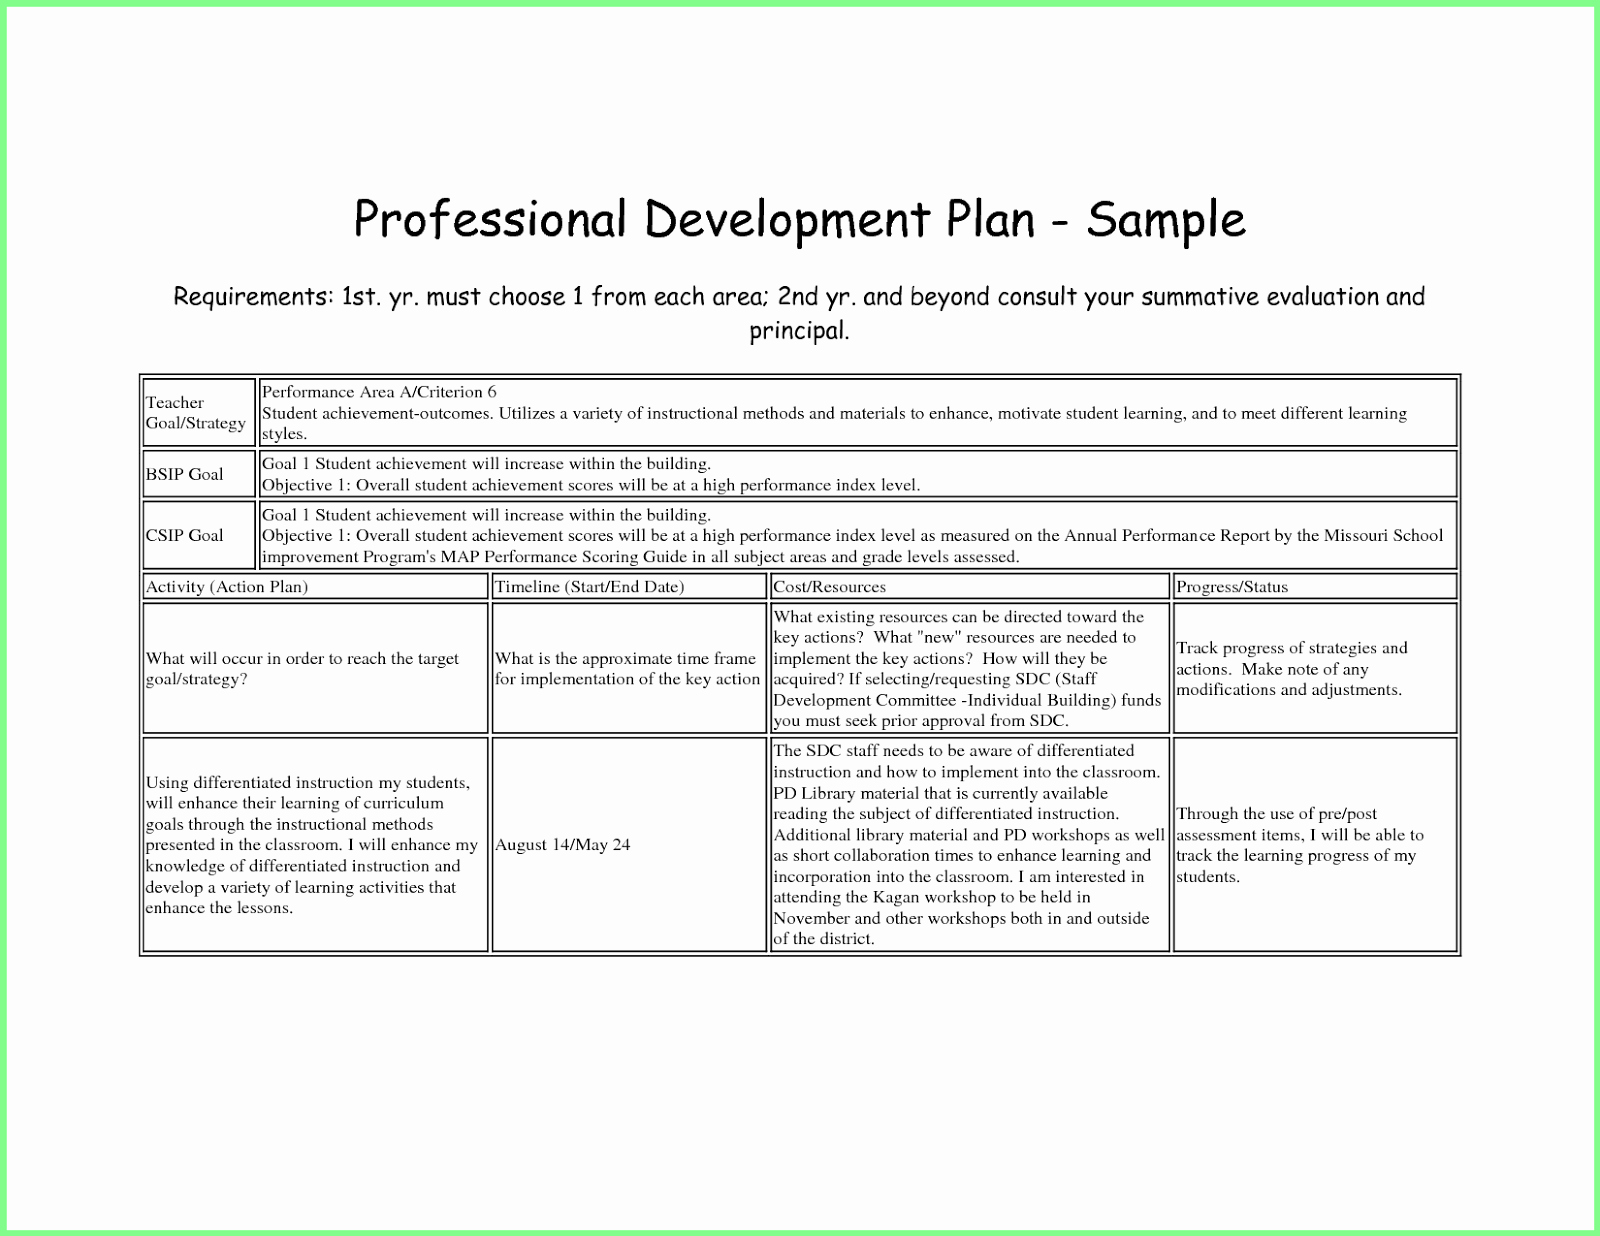 Teaching Action Plan Template Best Of Image Result for Professional Development Plan